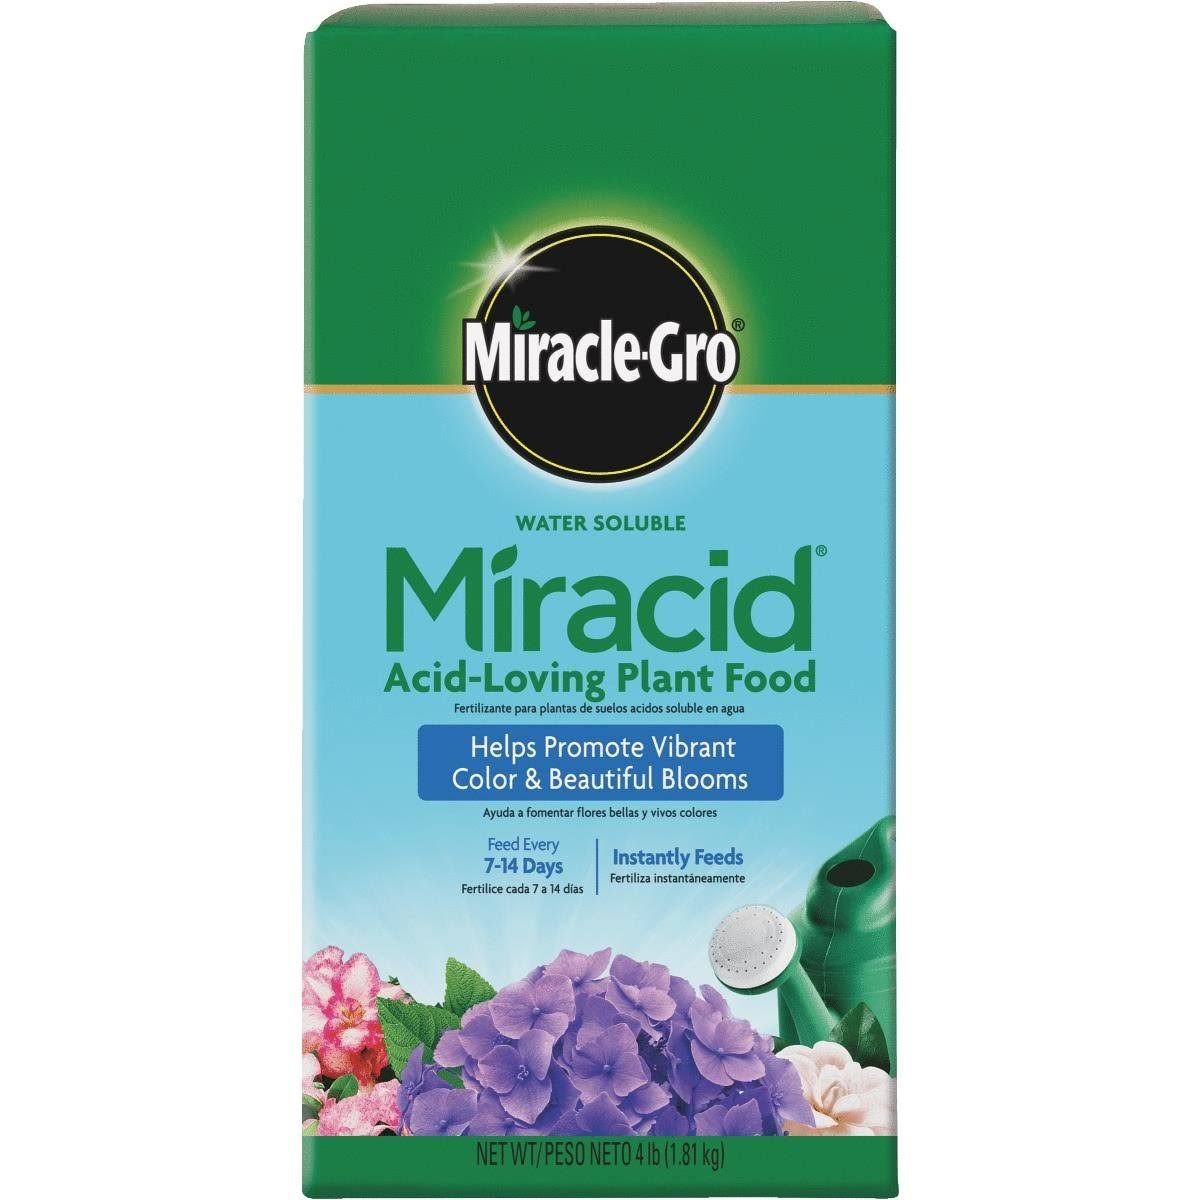 Miracle Gro Garden Pro Water Soluble Miracid Plant Food - 4lb